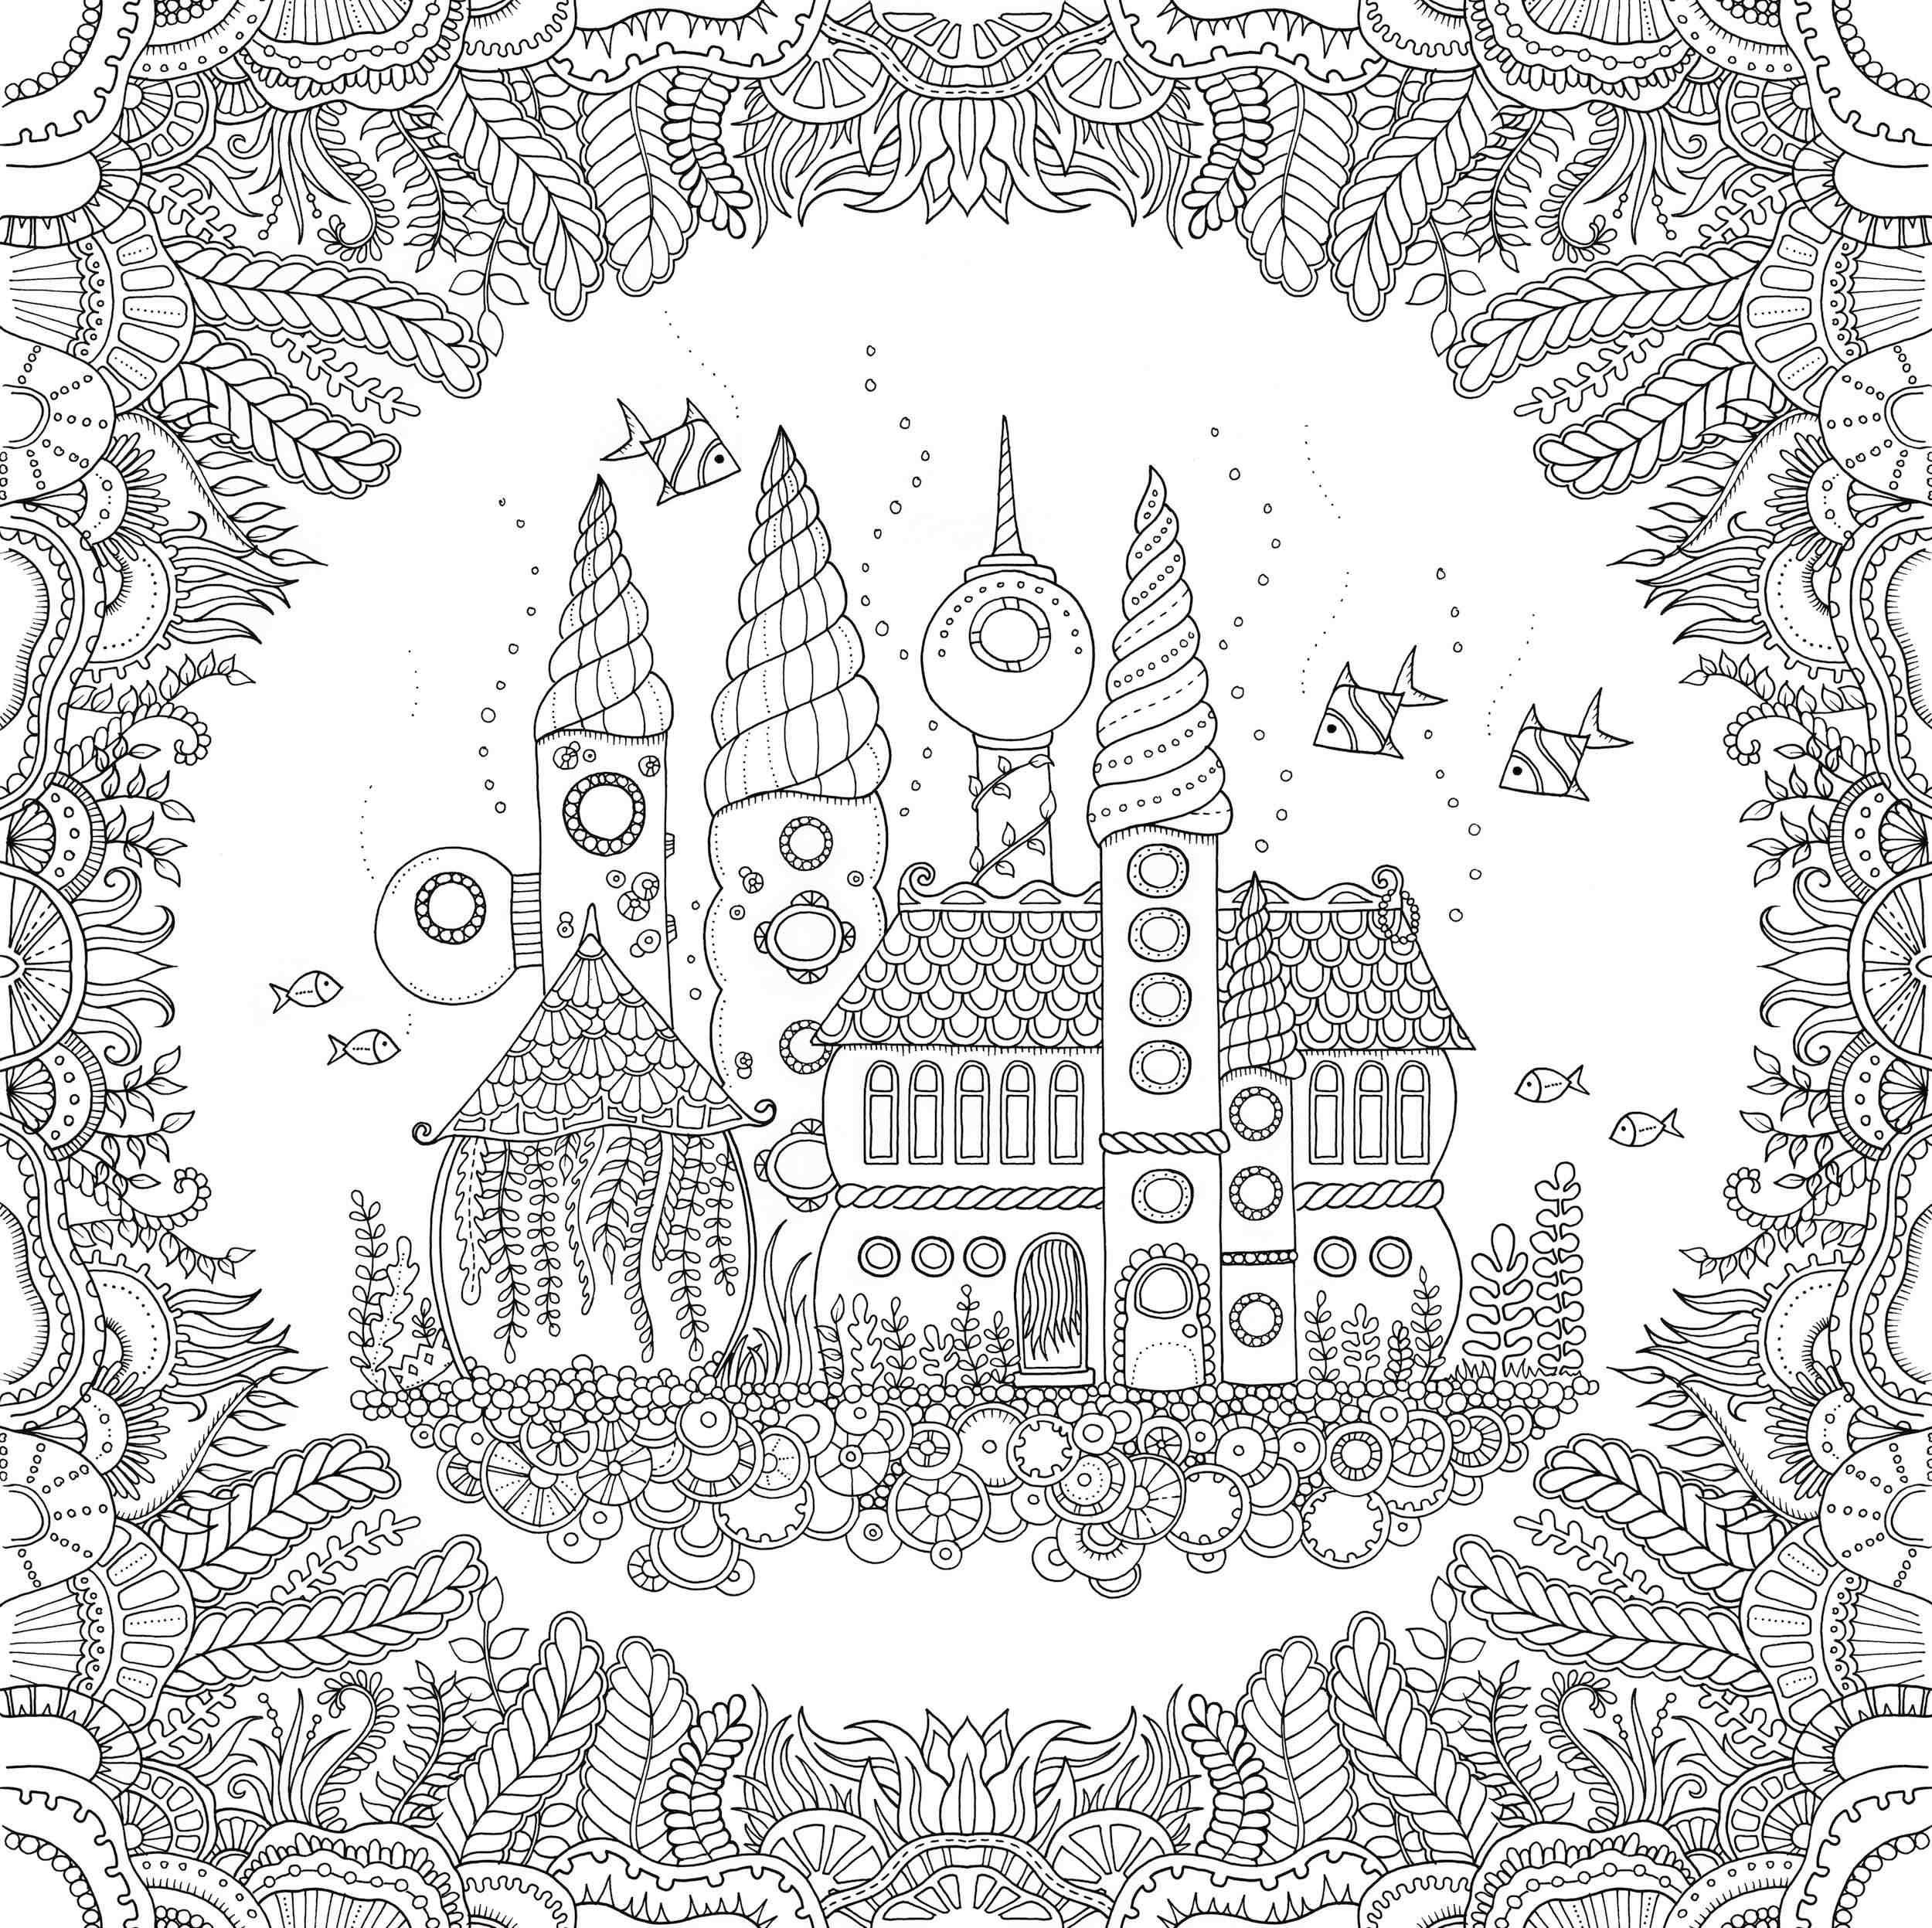 Free Coloring book pages for adults - Coloring Book Addict | Adult ...